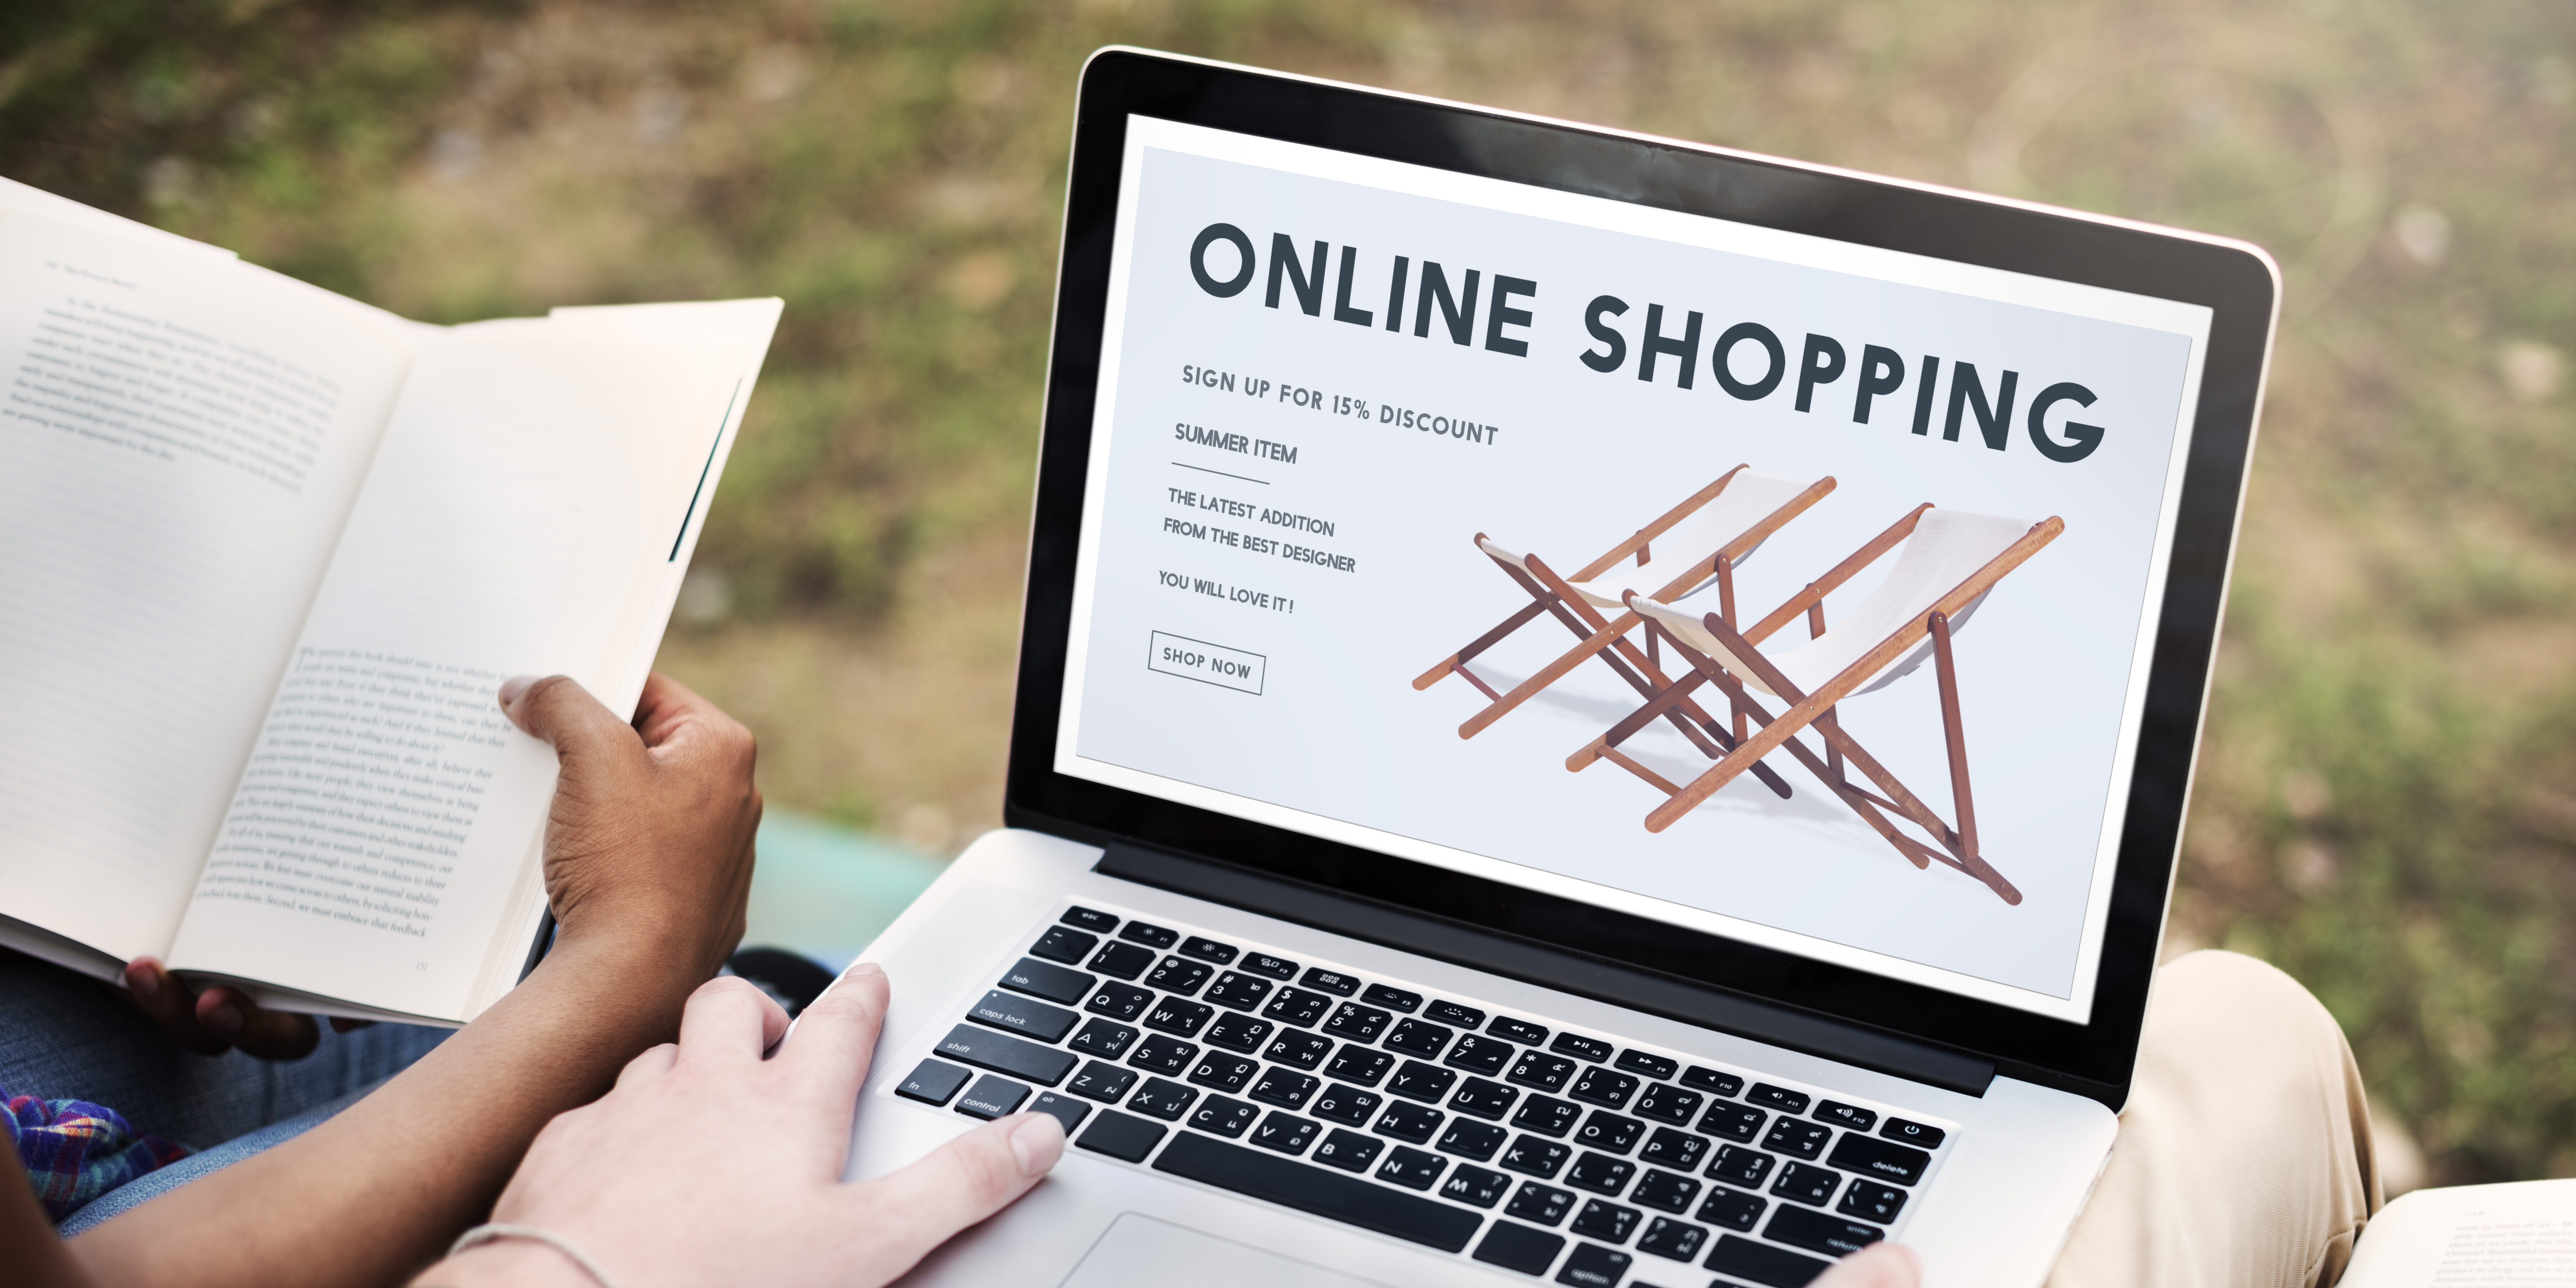 5 Tips to Keep You Safe While Shopping Online